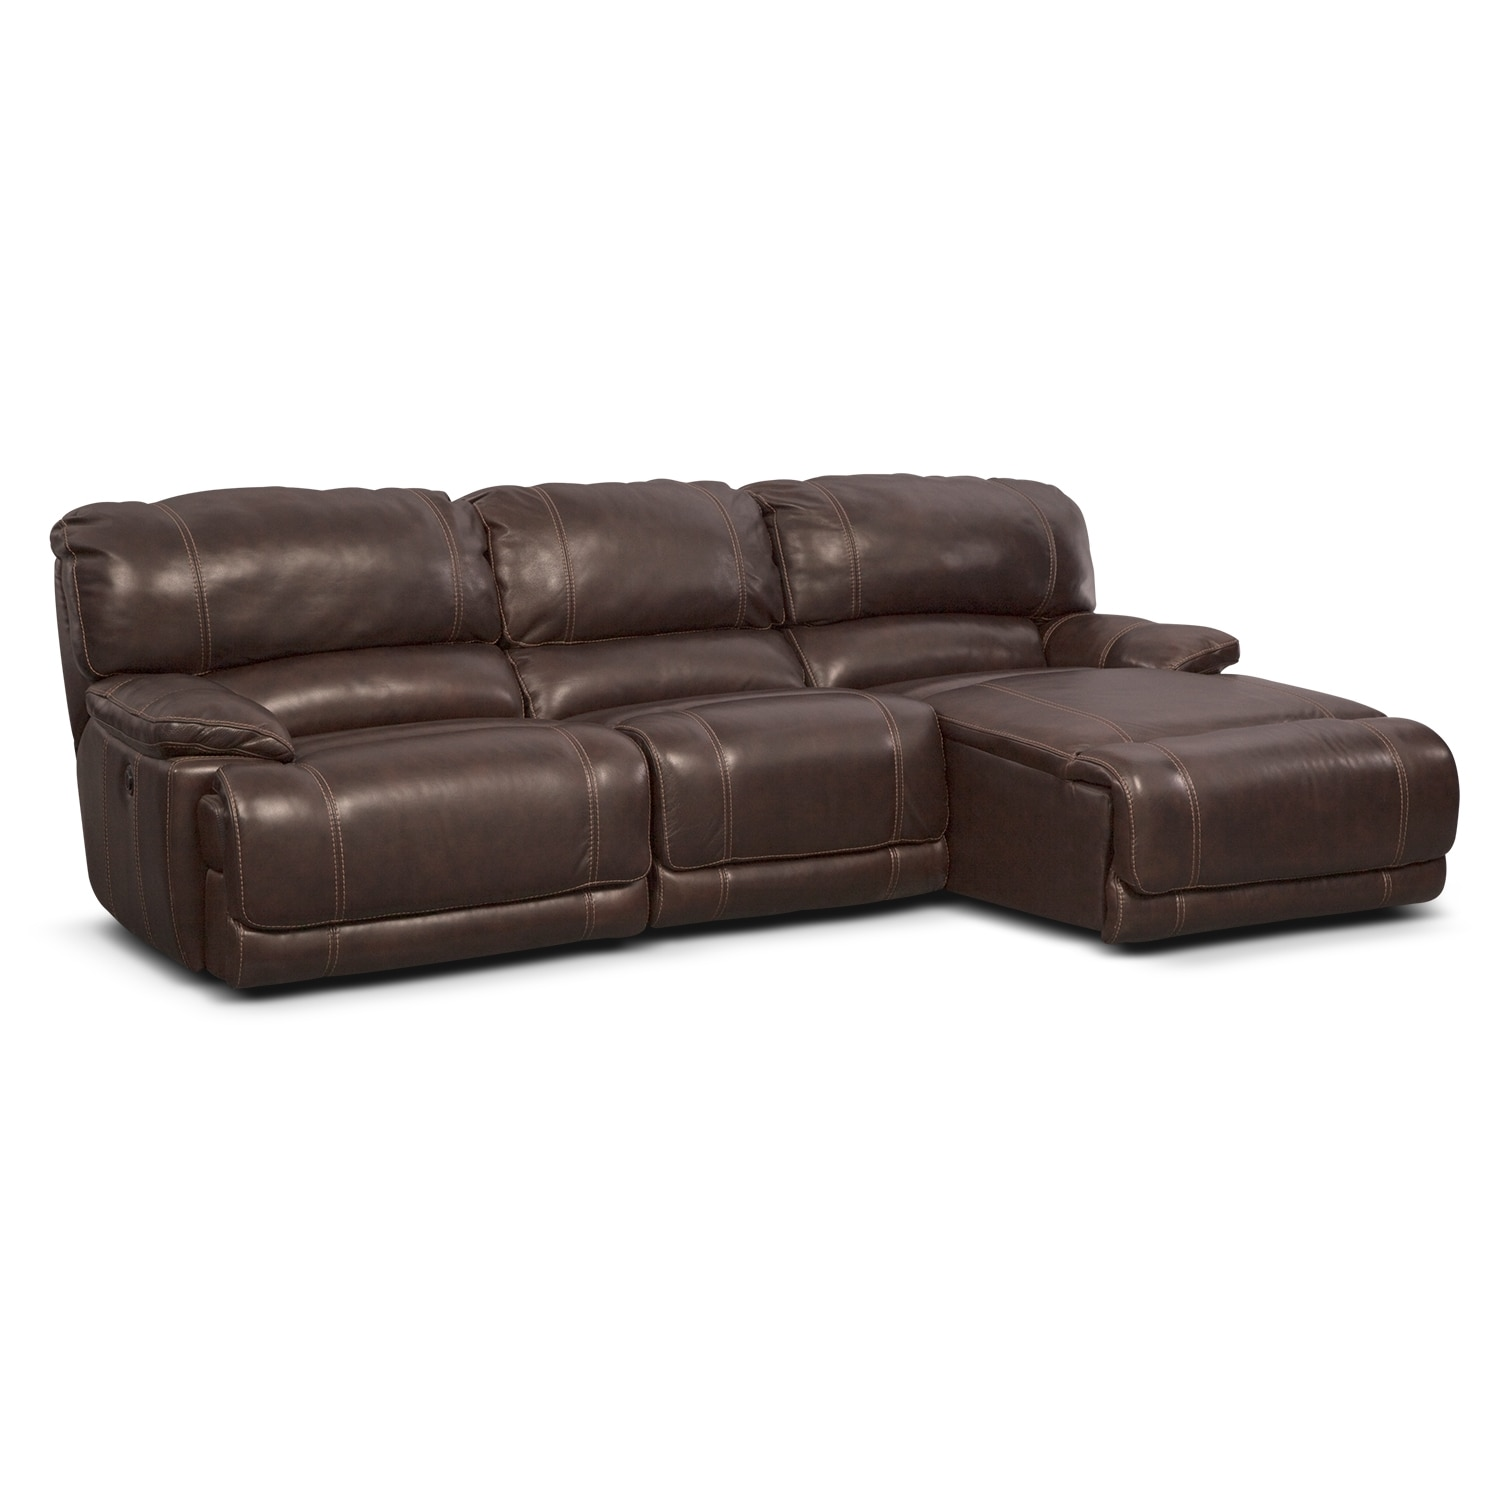 St malo 3 piece power reclining sectional with right for Sectional sofa with reclining ends